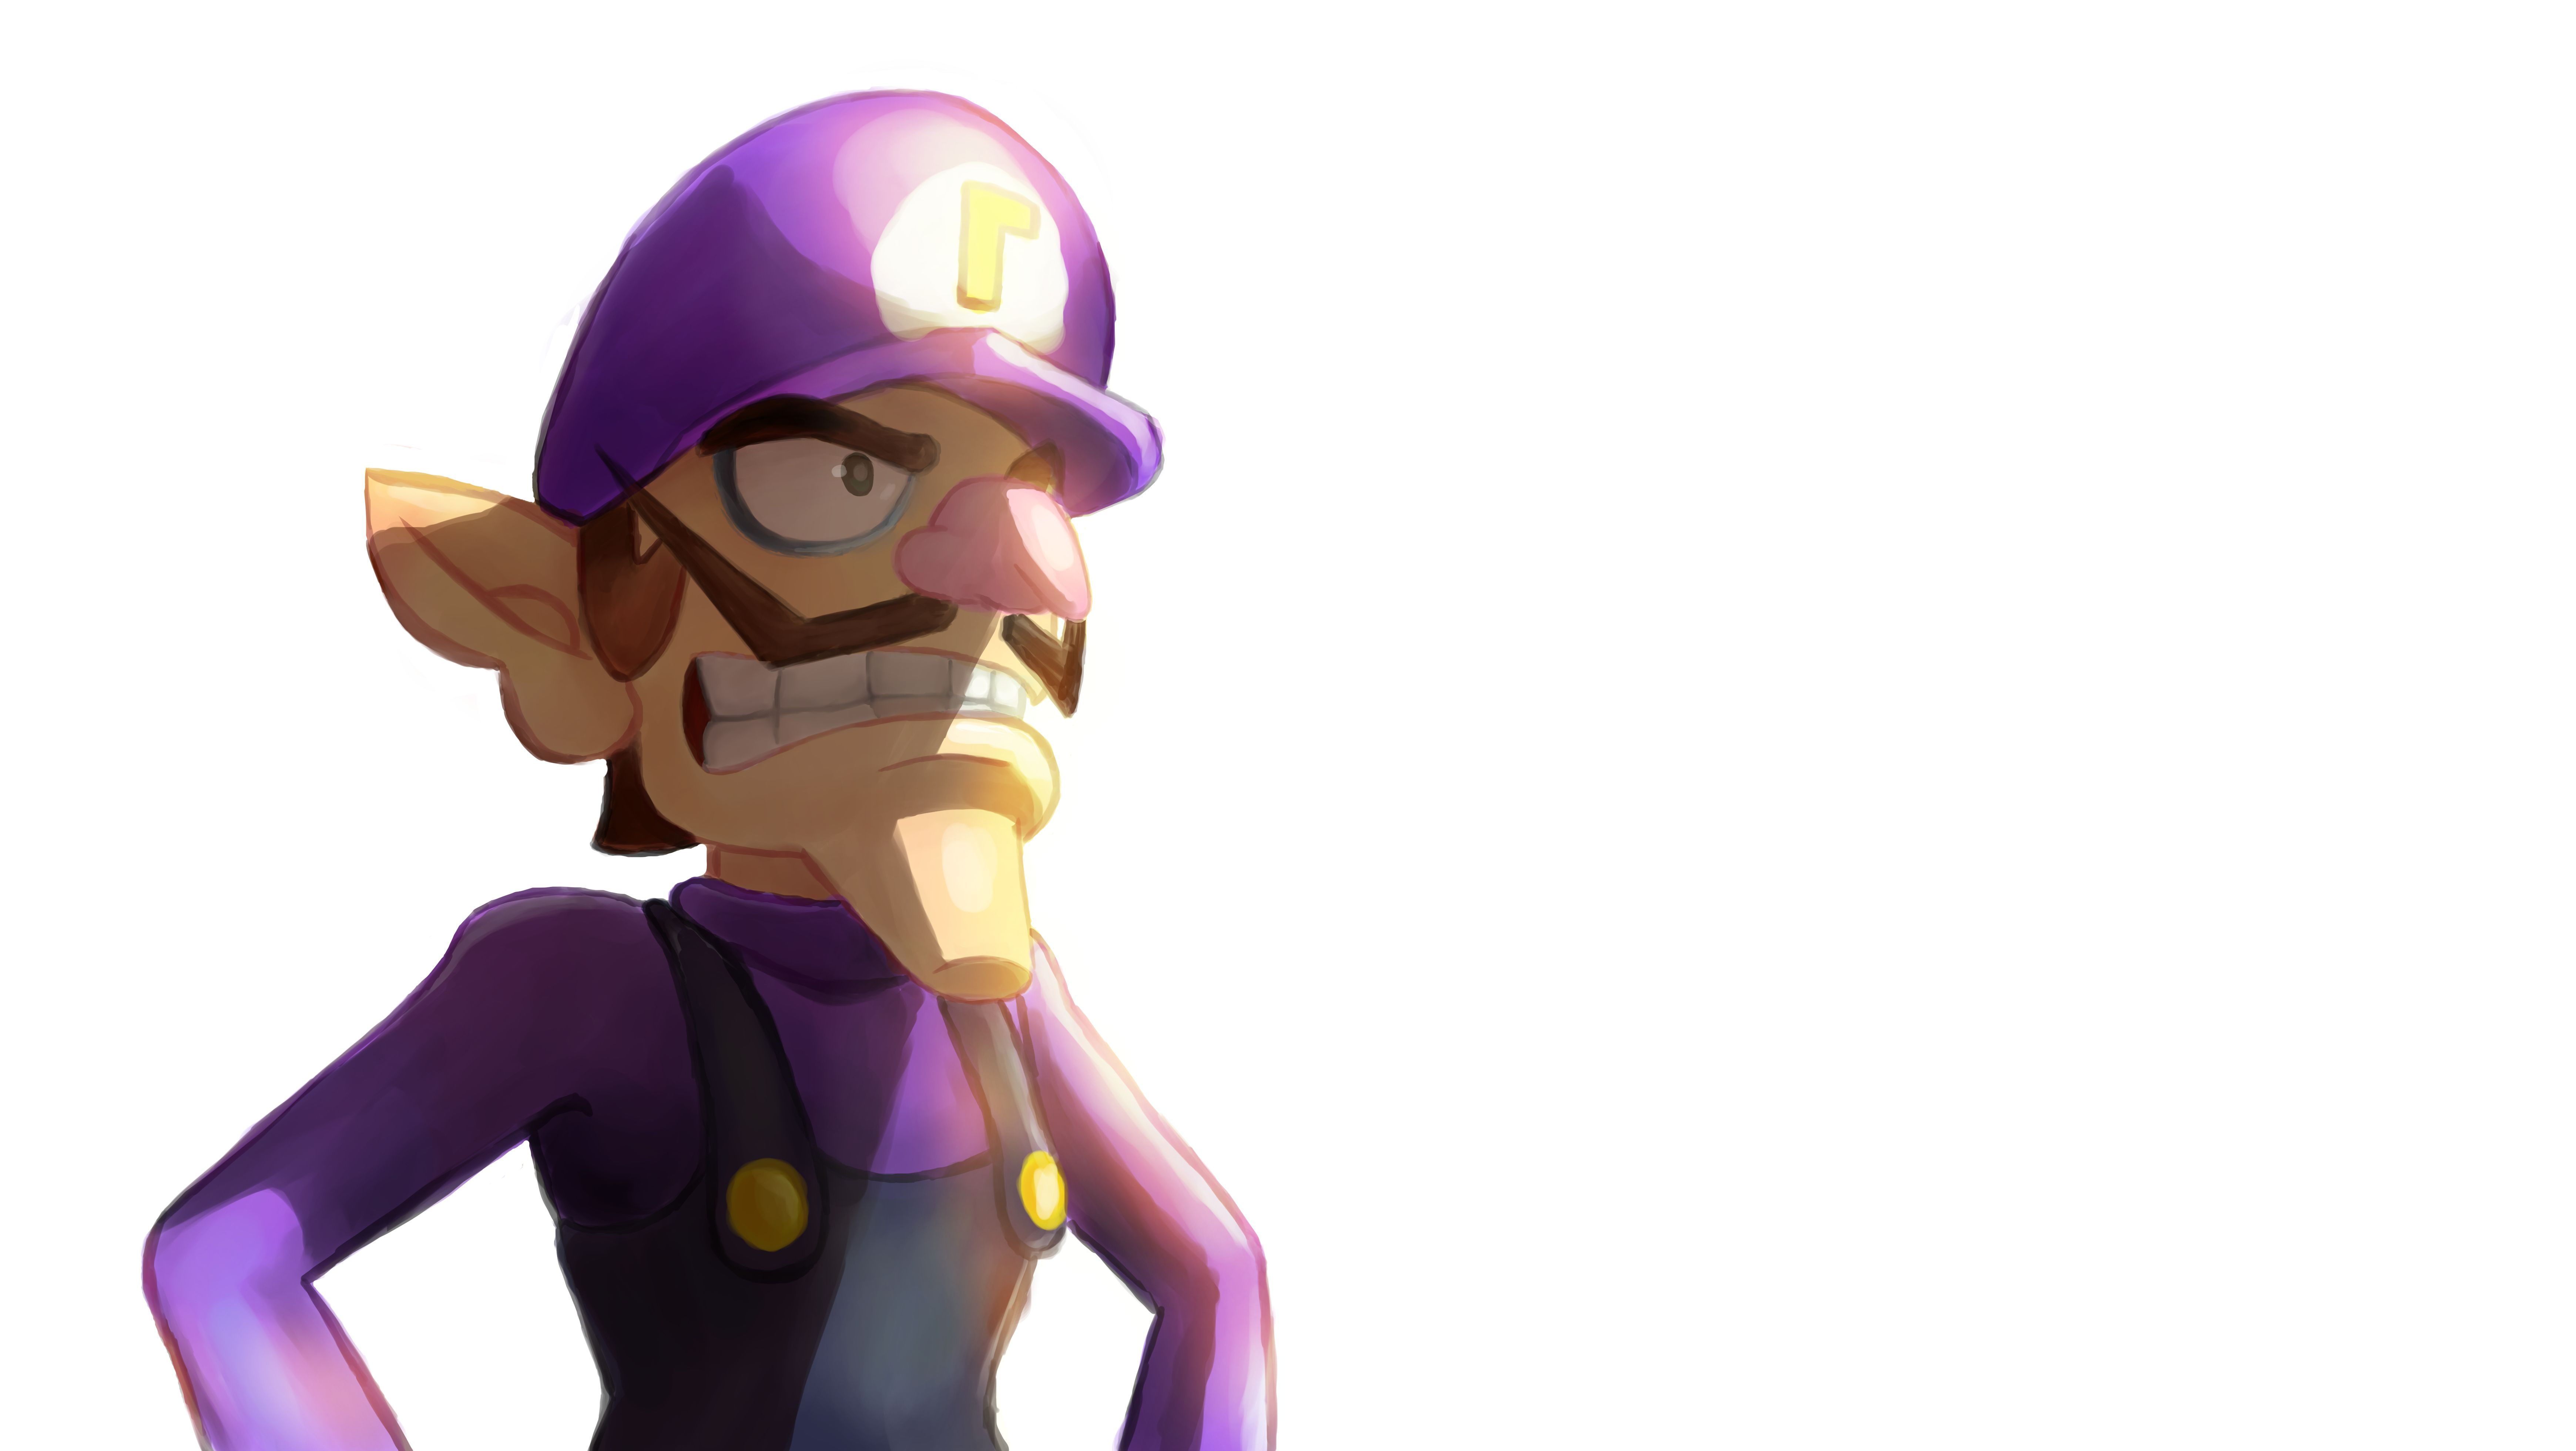 An Illustration Of Waluigi To Support The Cause Waluigi4smash Justice4waluigi Waluigi Mario Ninte Super Mario Art Super Mario Bros Super Mario Brothers